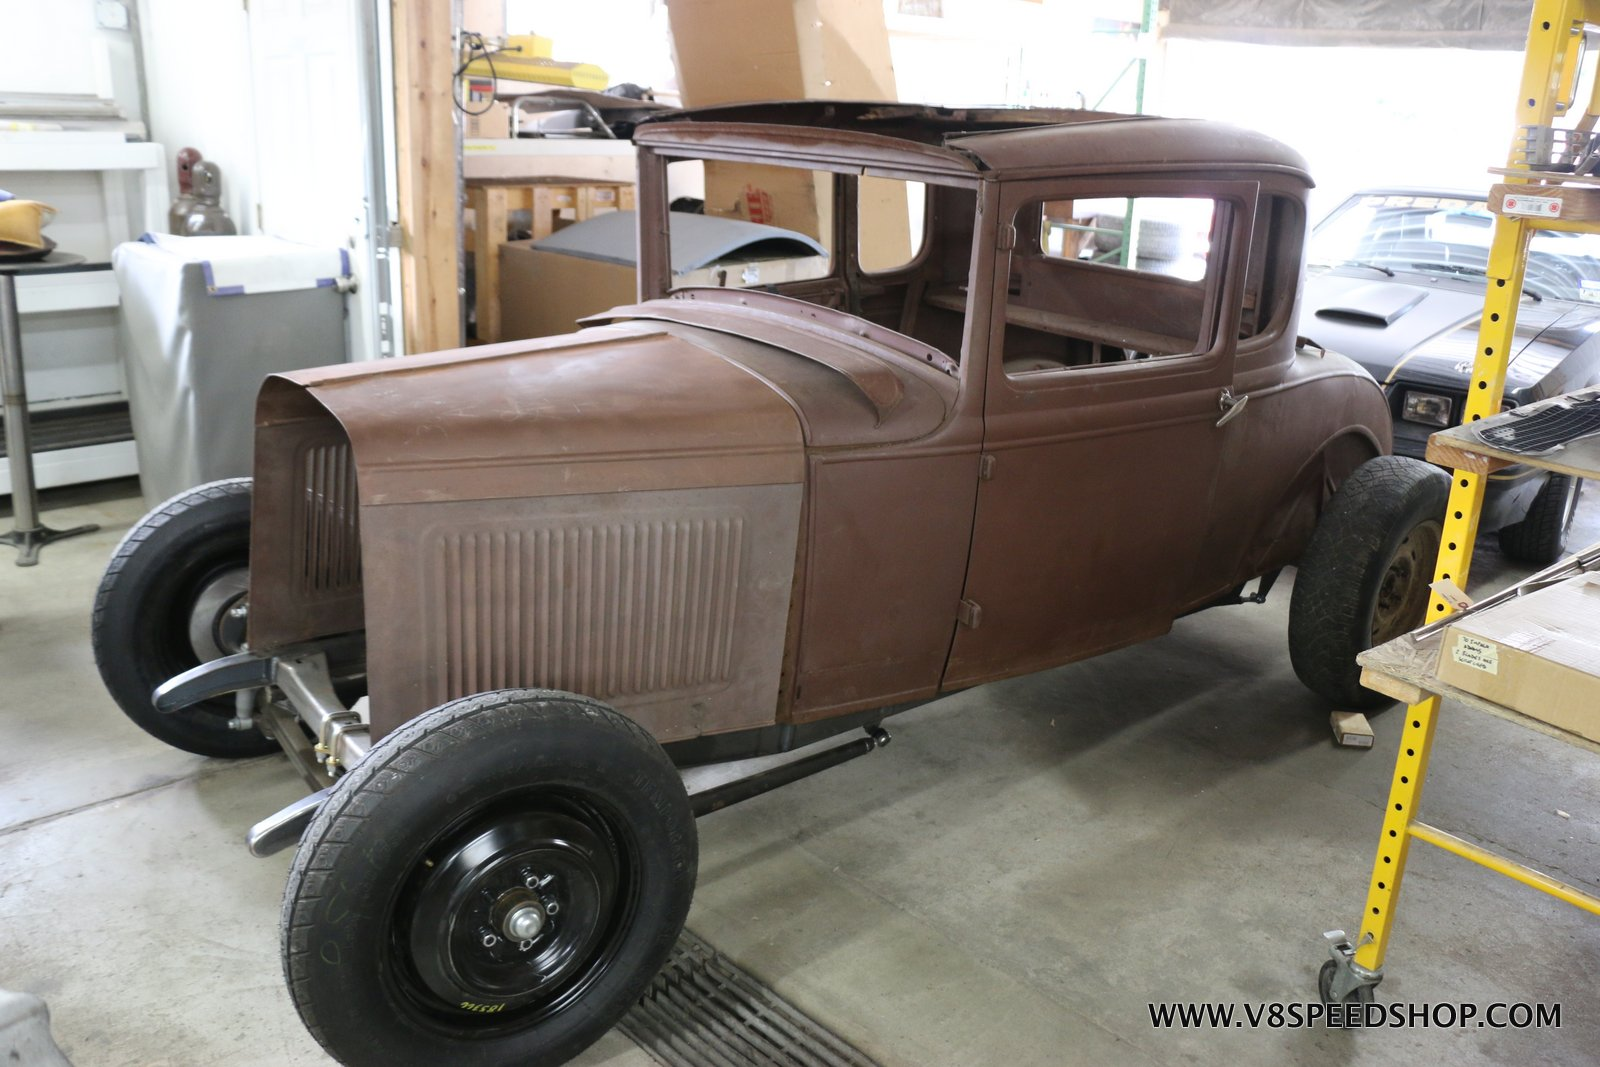 1931 Ford Model A Hot Rod at the V8 Speed and Resto Shop